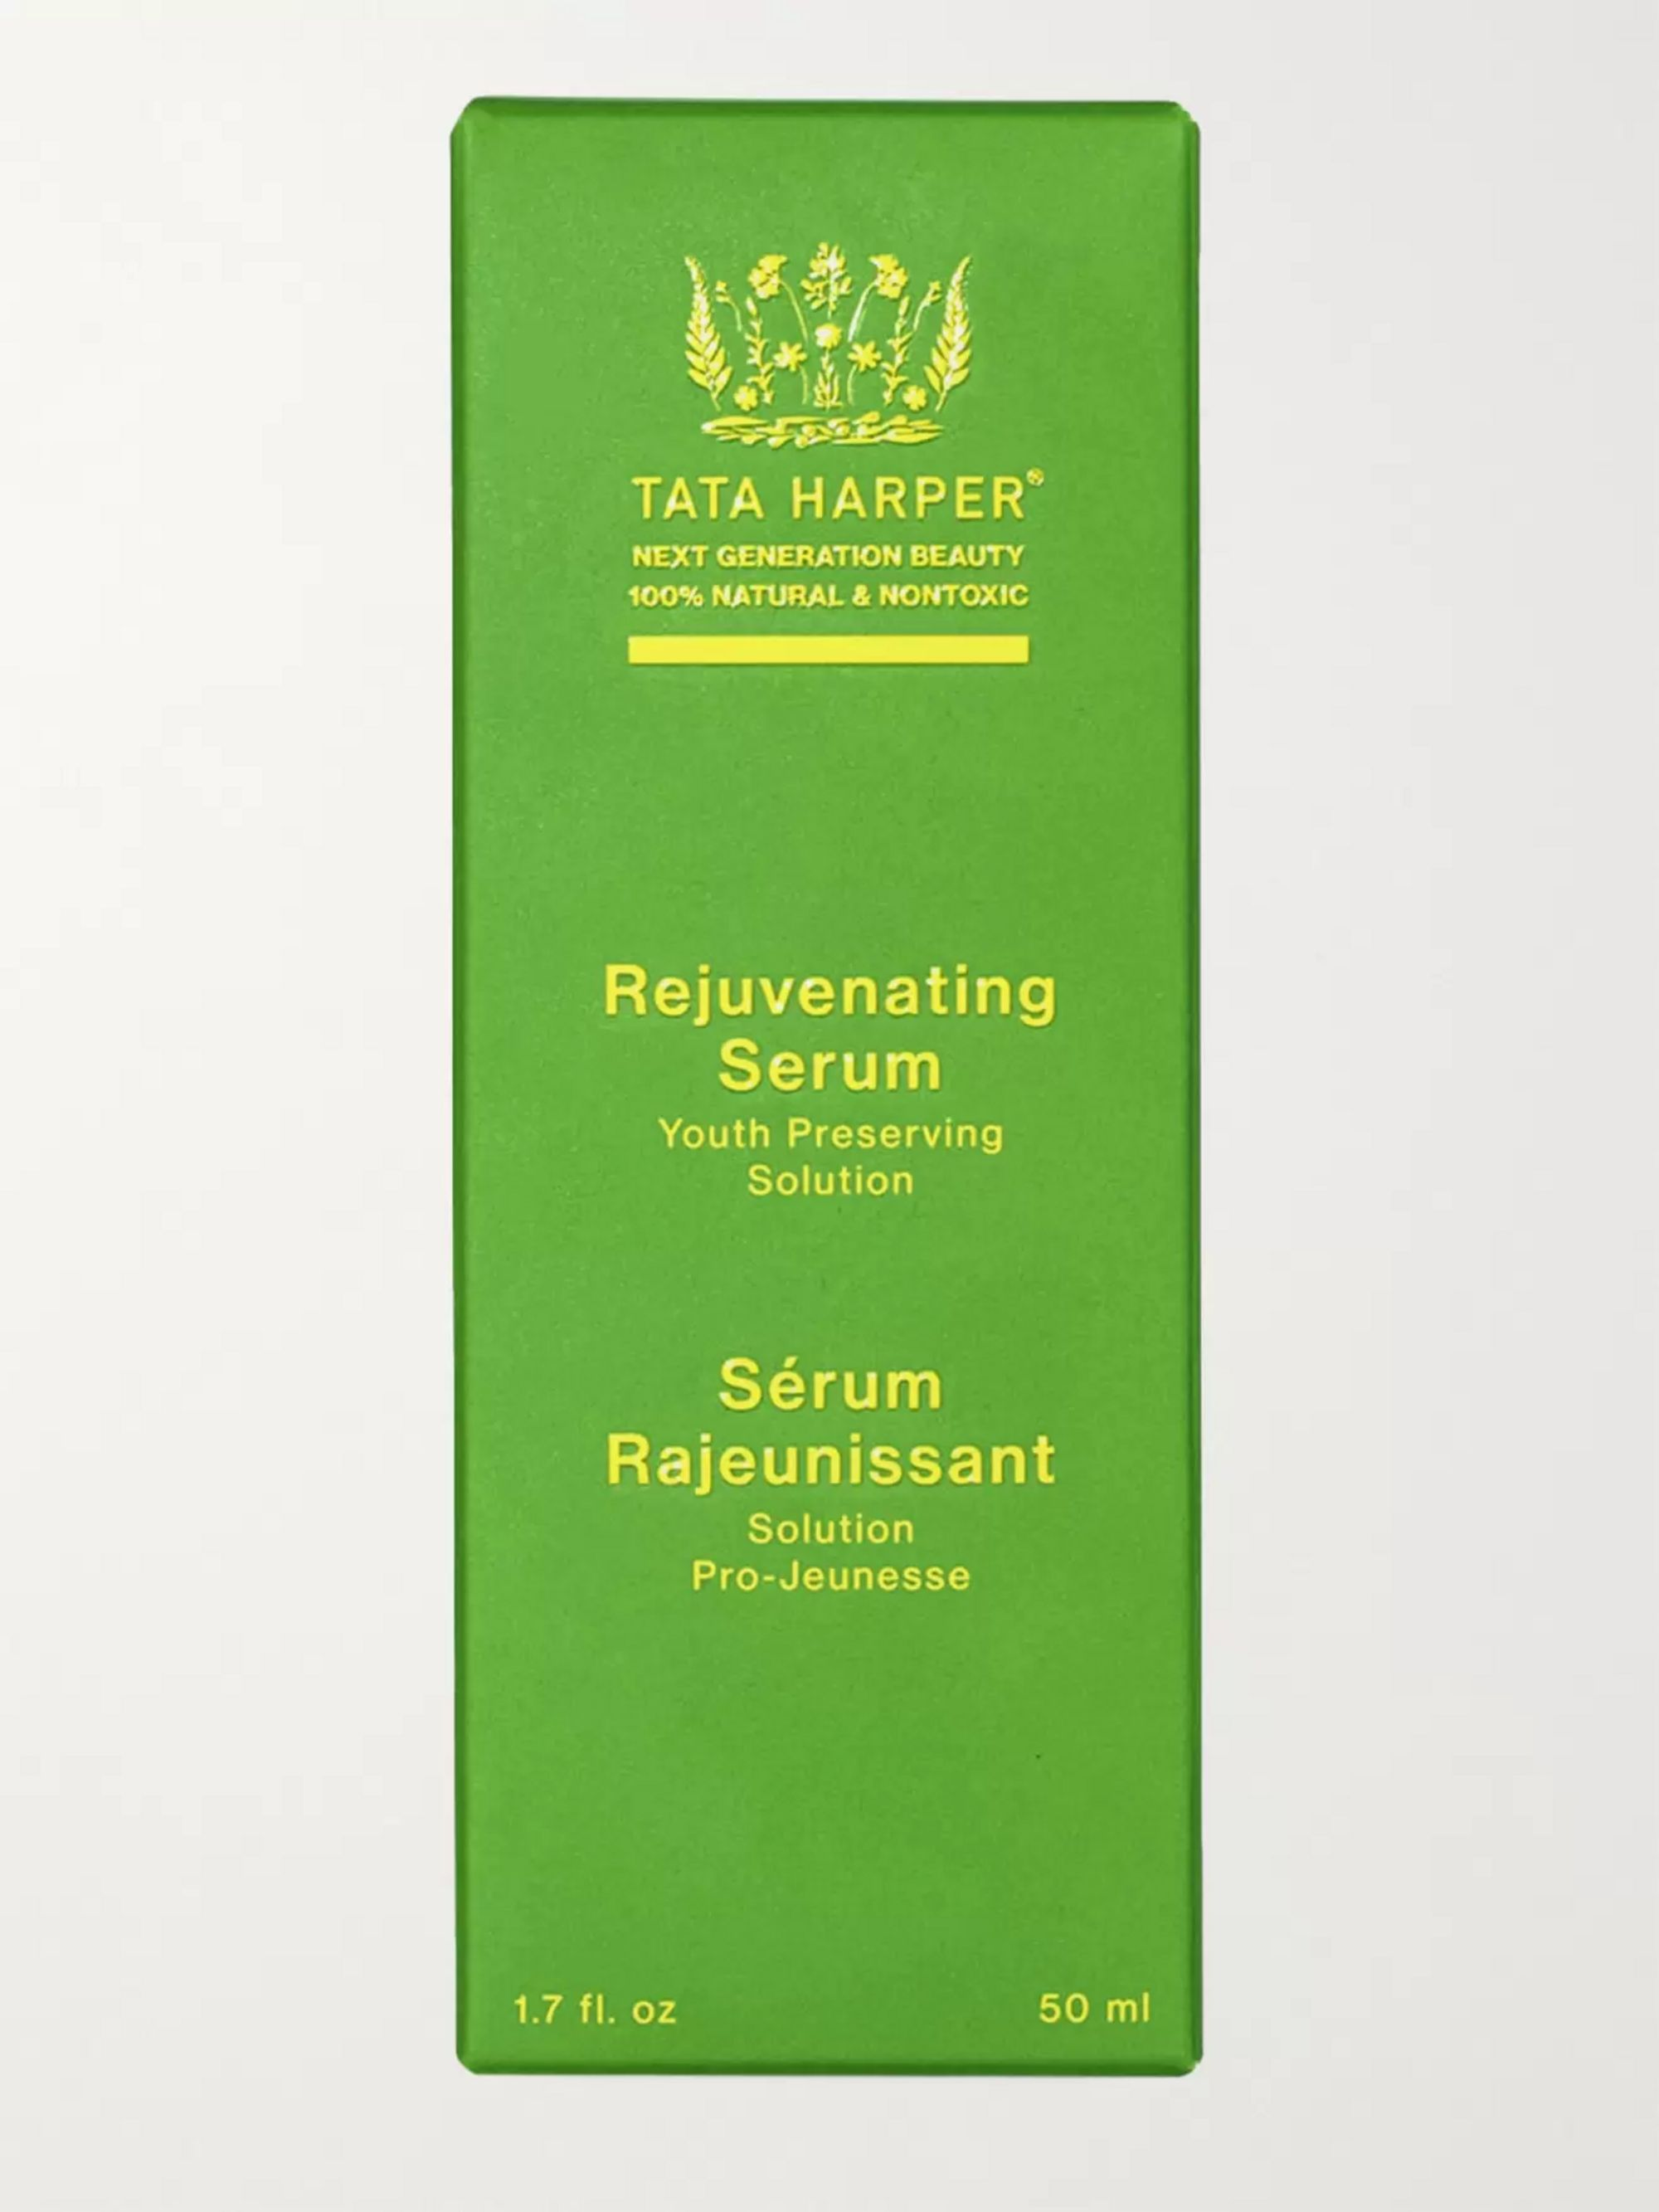 TATA HARPER Rejuvenating Serum, 30ml